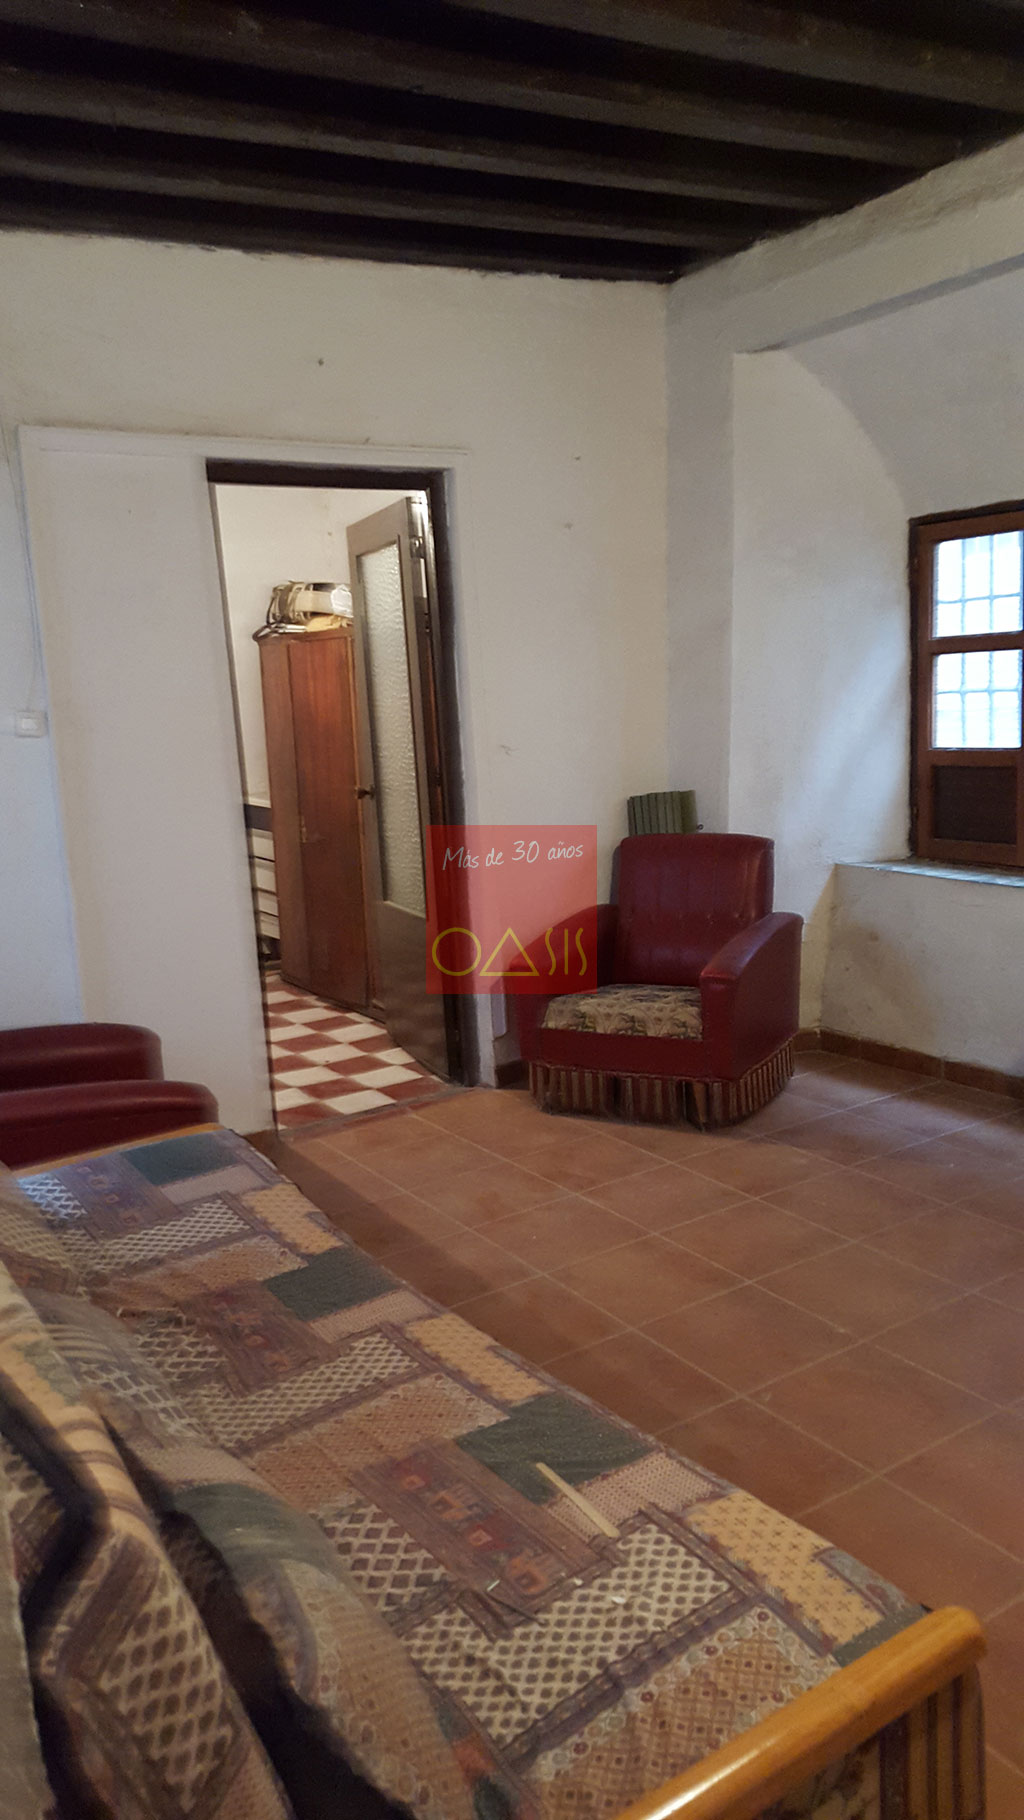 Partially restored interior -  - Wonderful and ample house on sale in lower Albayzín - Oasis Real Estate, more than 30 years in the Albayzín